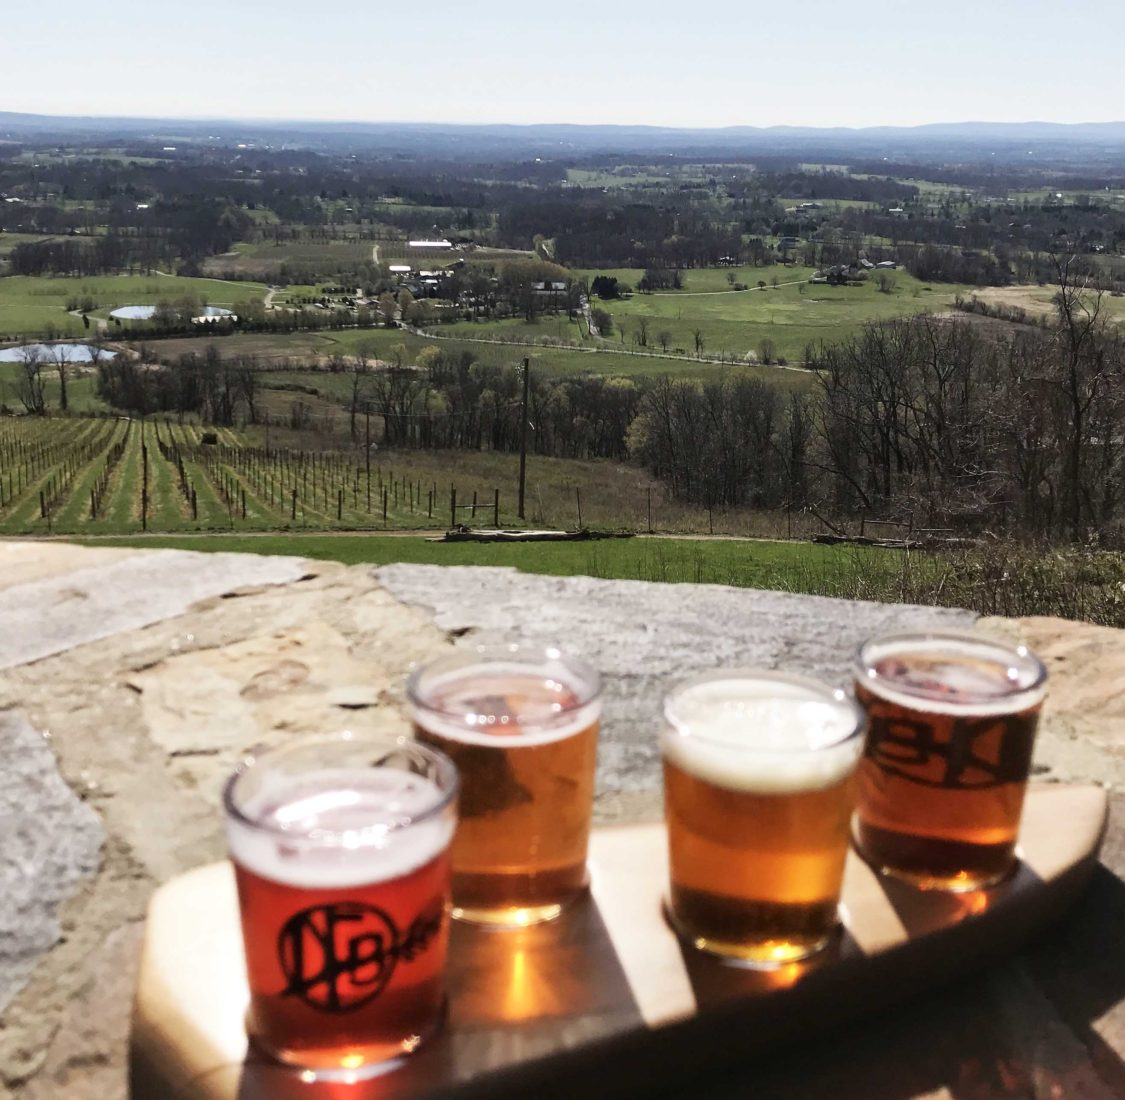 324. Dirt Farm Brewing Co, Bluemont VA, 2017